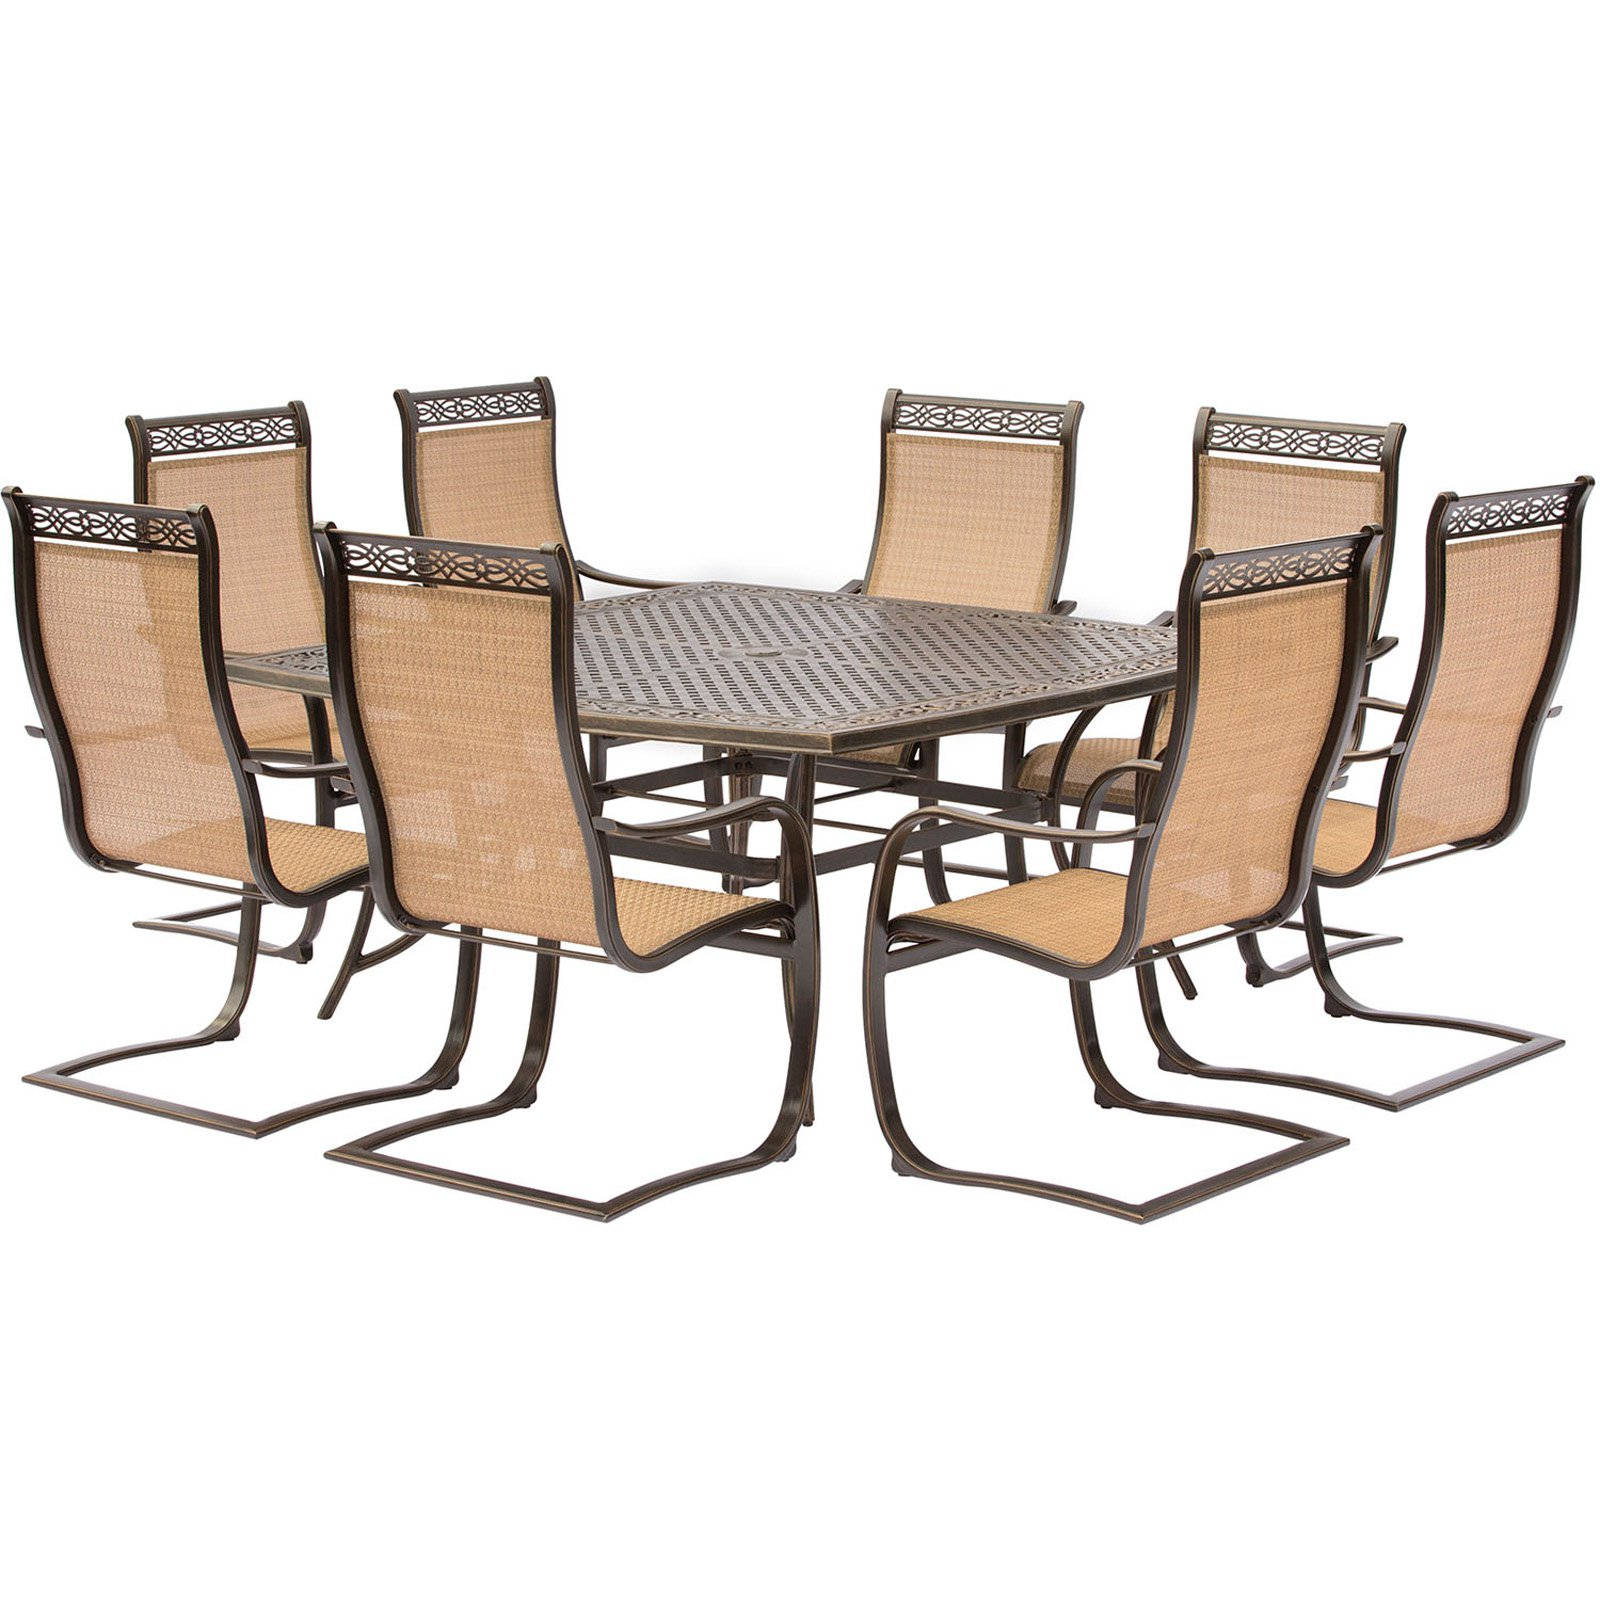 Hanover Manor 9-Piece Outdoor Dining Set with C-Spring Chairs and Square Table